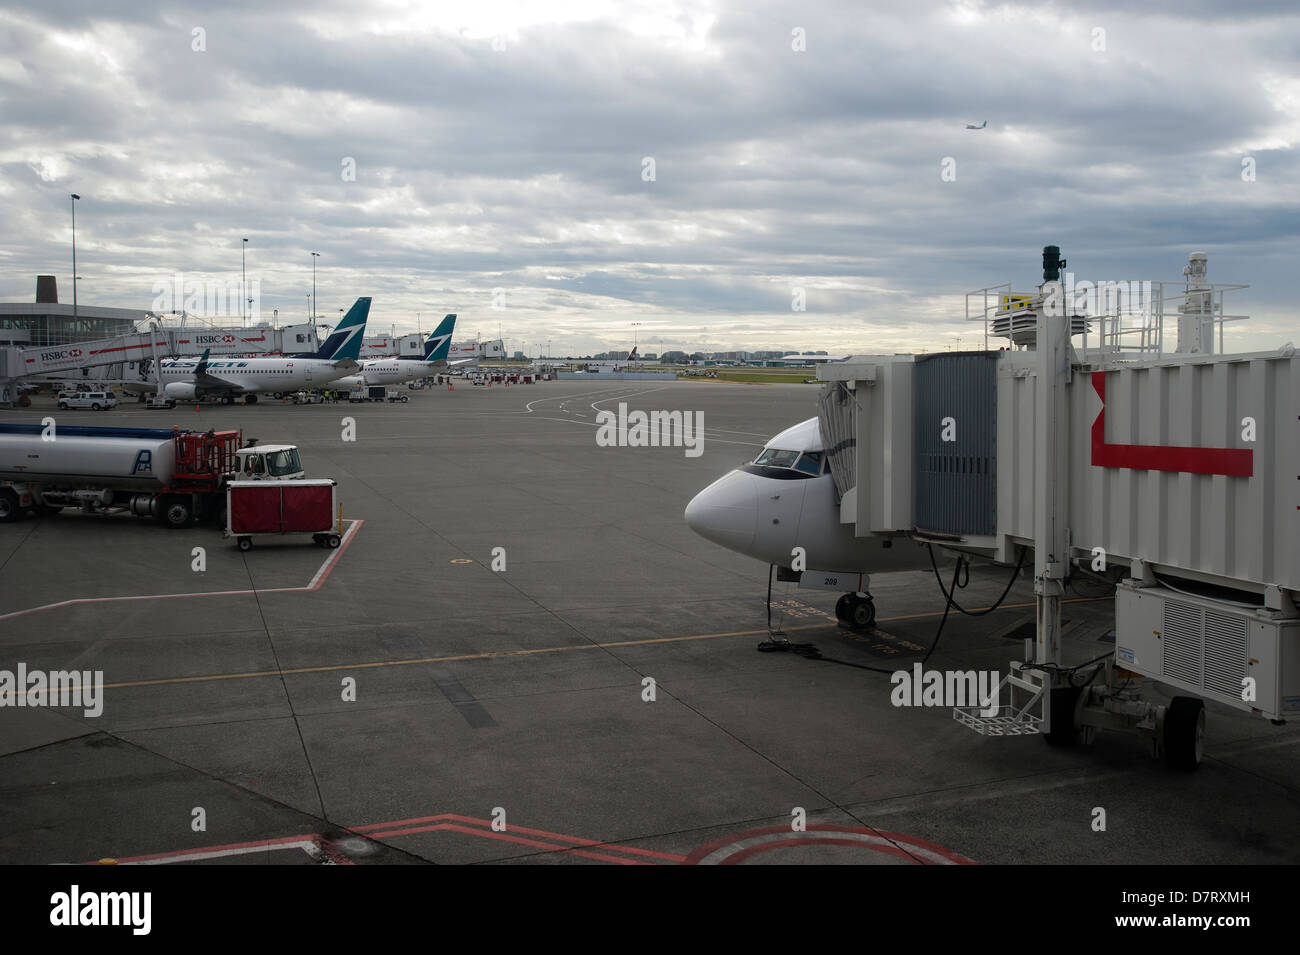 Airplanes on the tarmac at Vancouver International Airport, British Columbia, Canada - Stock Image